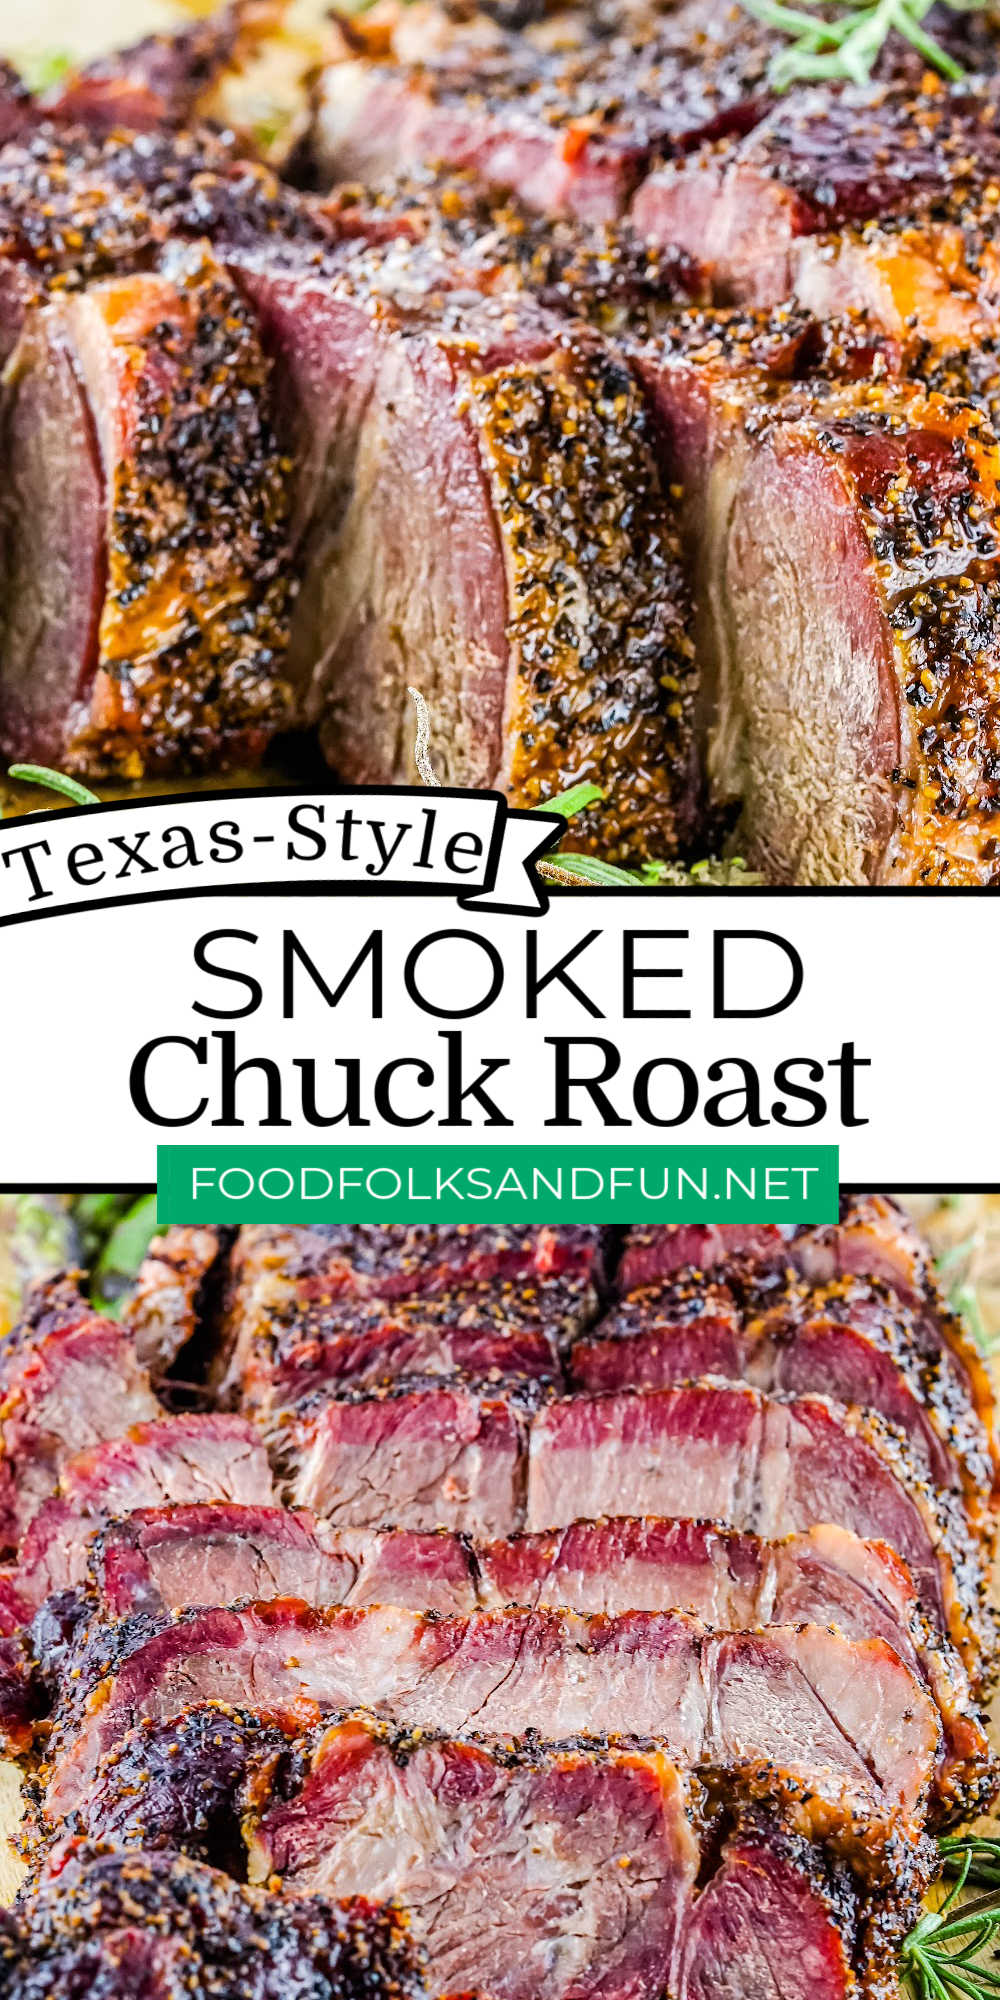 This Smoked Chuck Roast recipe is made Texas style. The meat melts in your mouth, and your knife will cut through it like it's cutting through butter! The roast is juicy, tender, and so succulent. via @foodfolksandfun